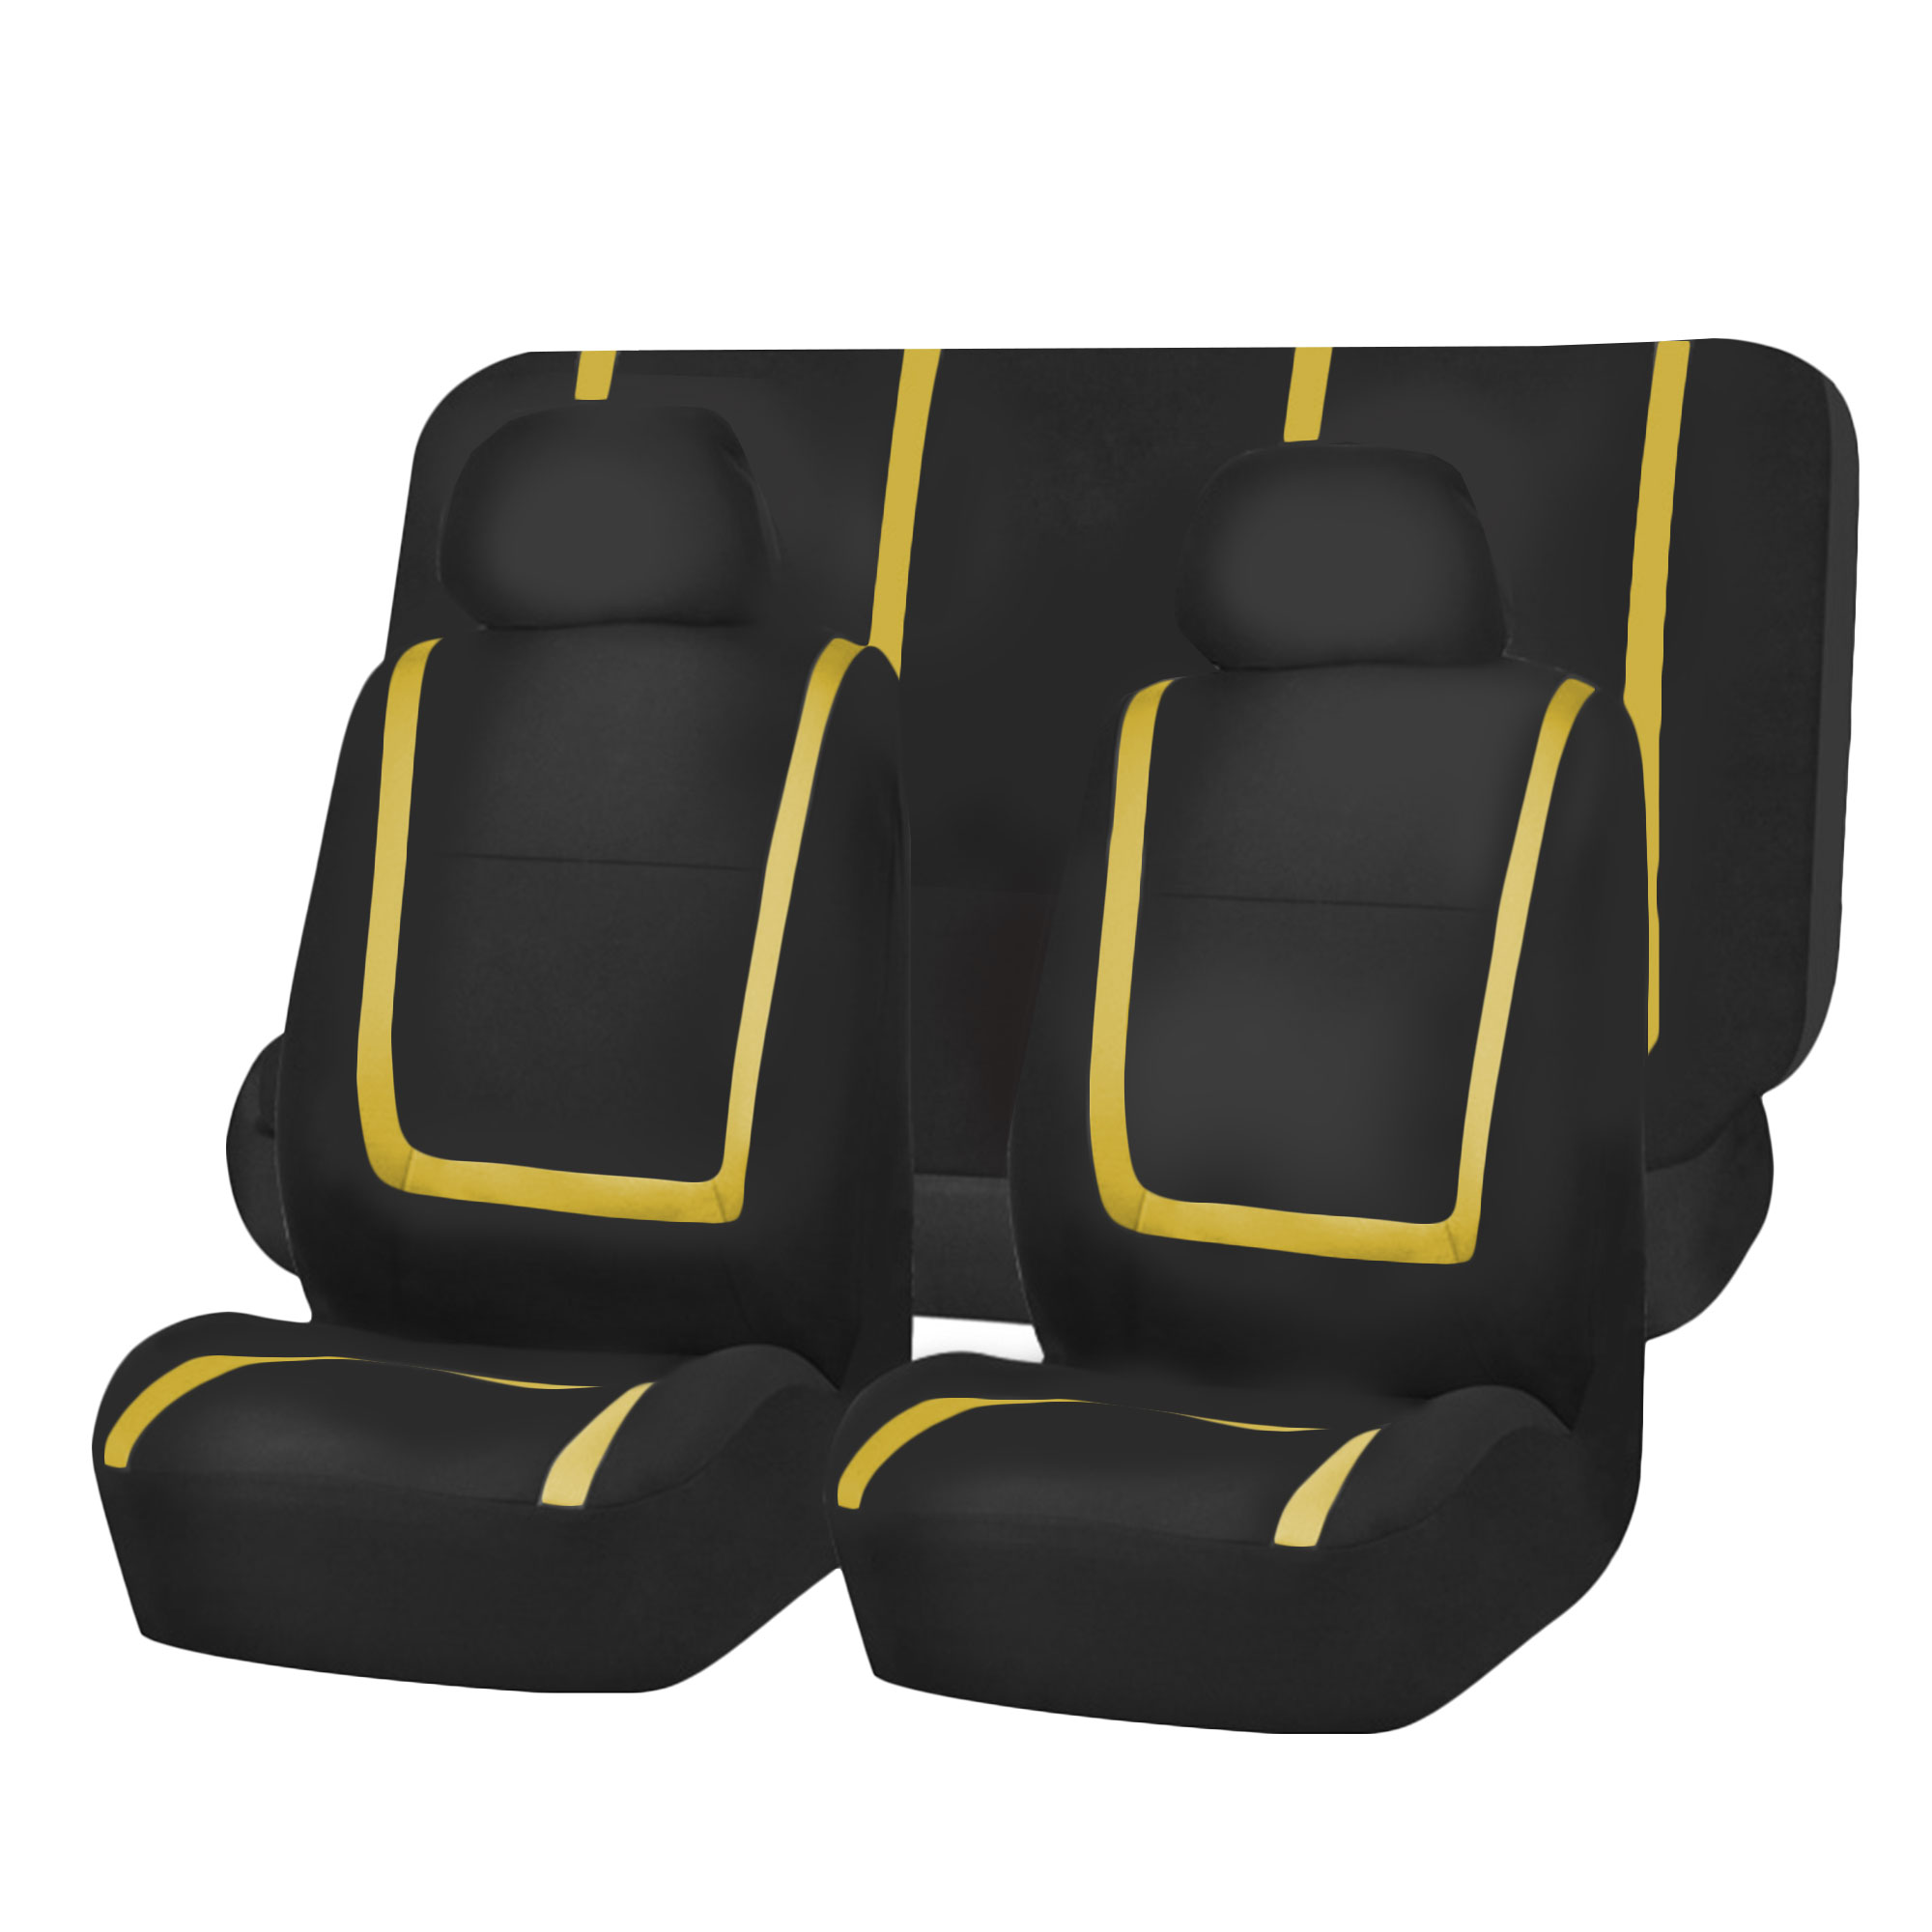 black yellow seat covers for car suv auto with gray floor mats ebay. Black Bedroom Furniture Sets. Home Design Ideas